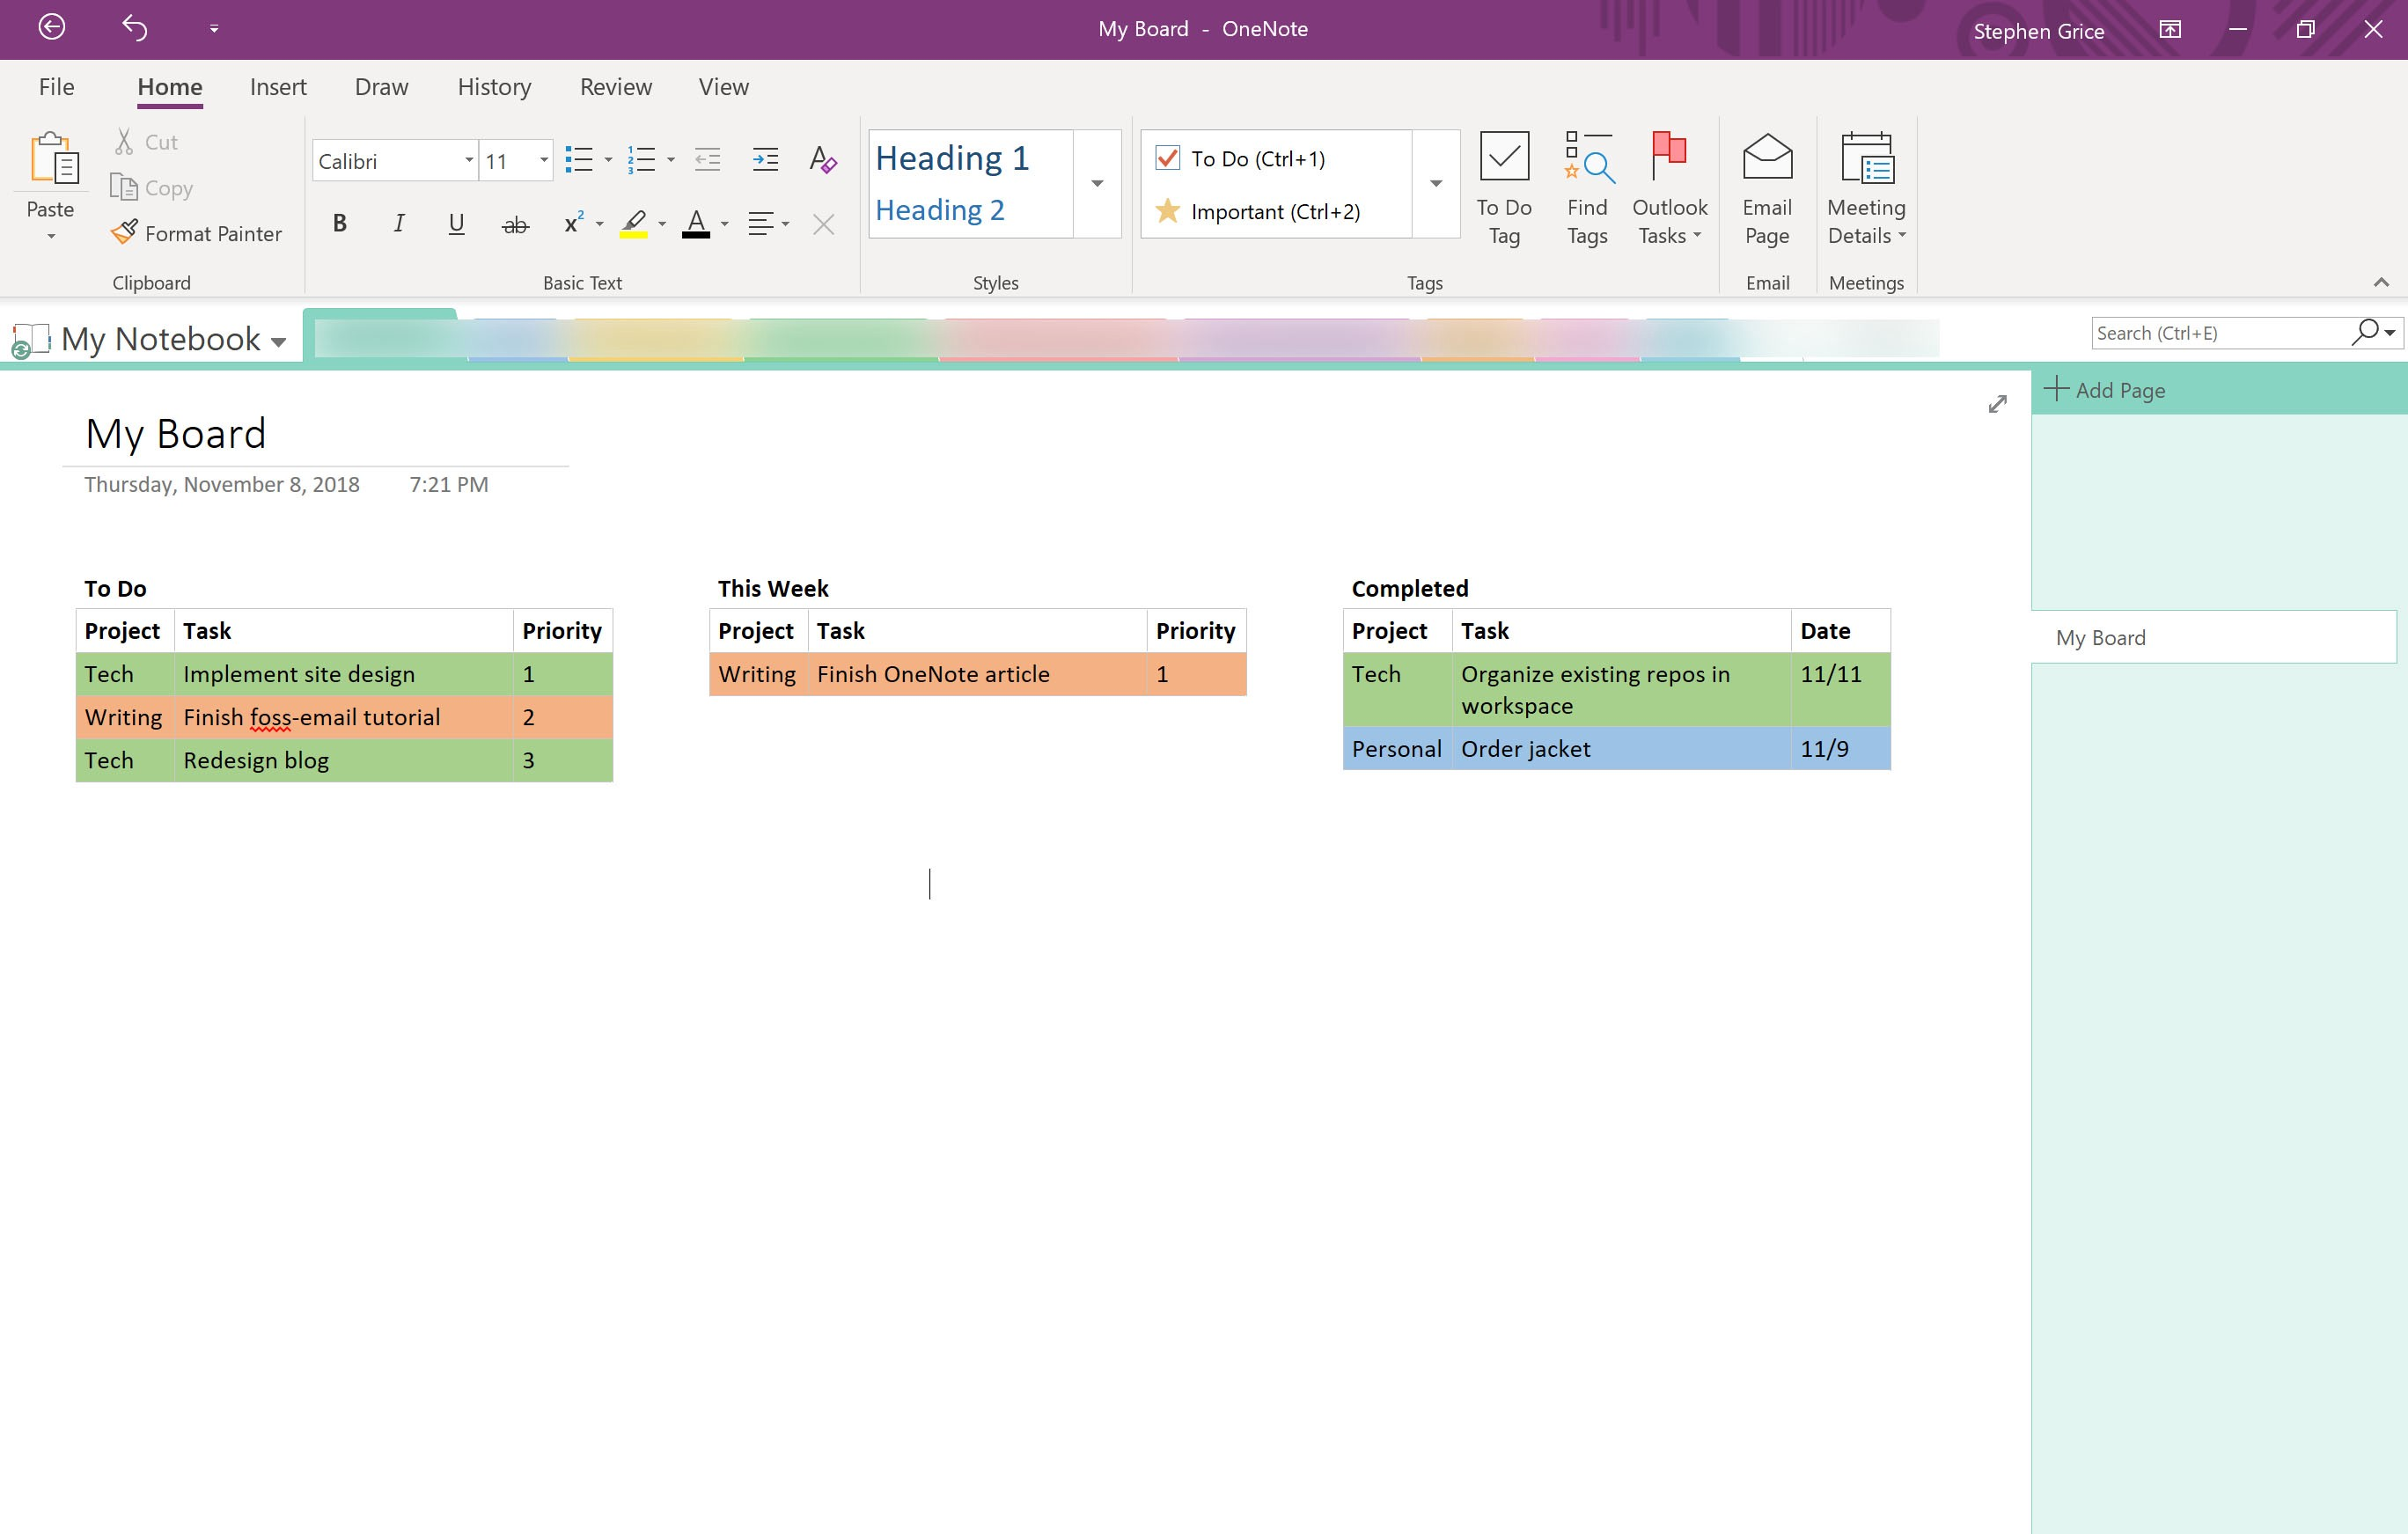 How to Create a Kanban Board in OneNote - Steve Grice - Medium